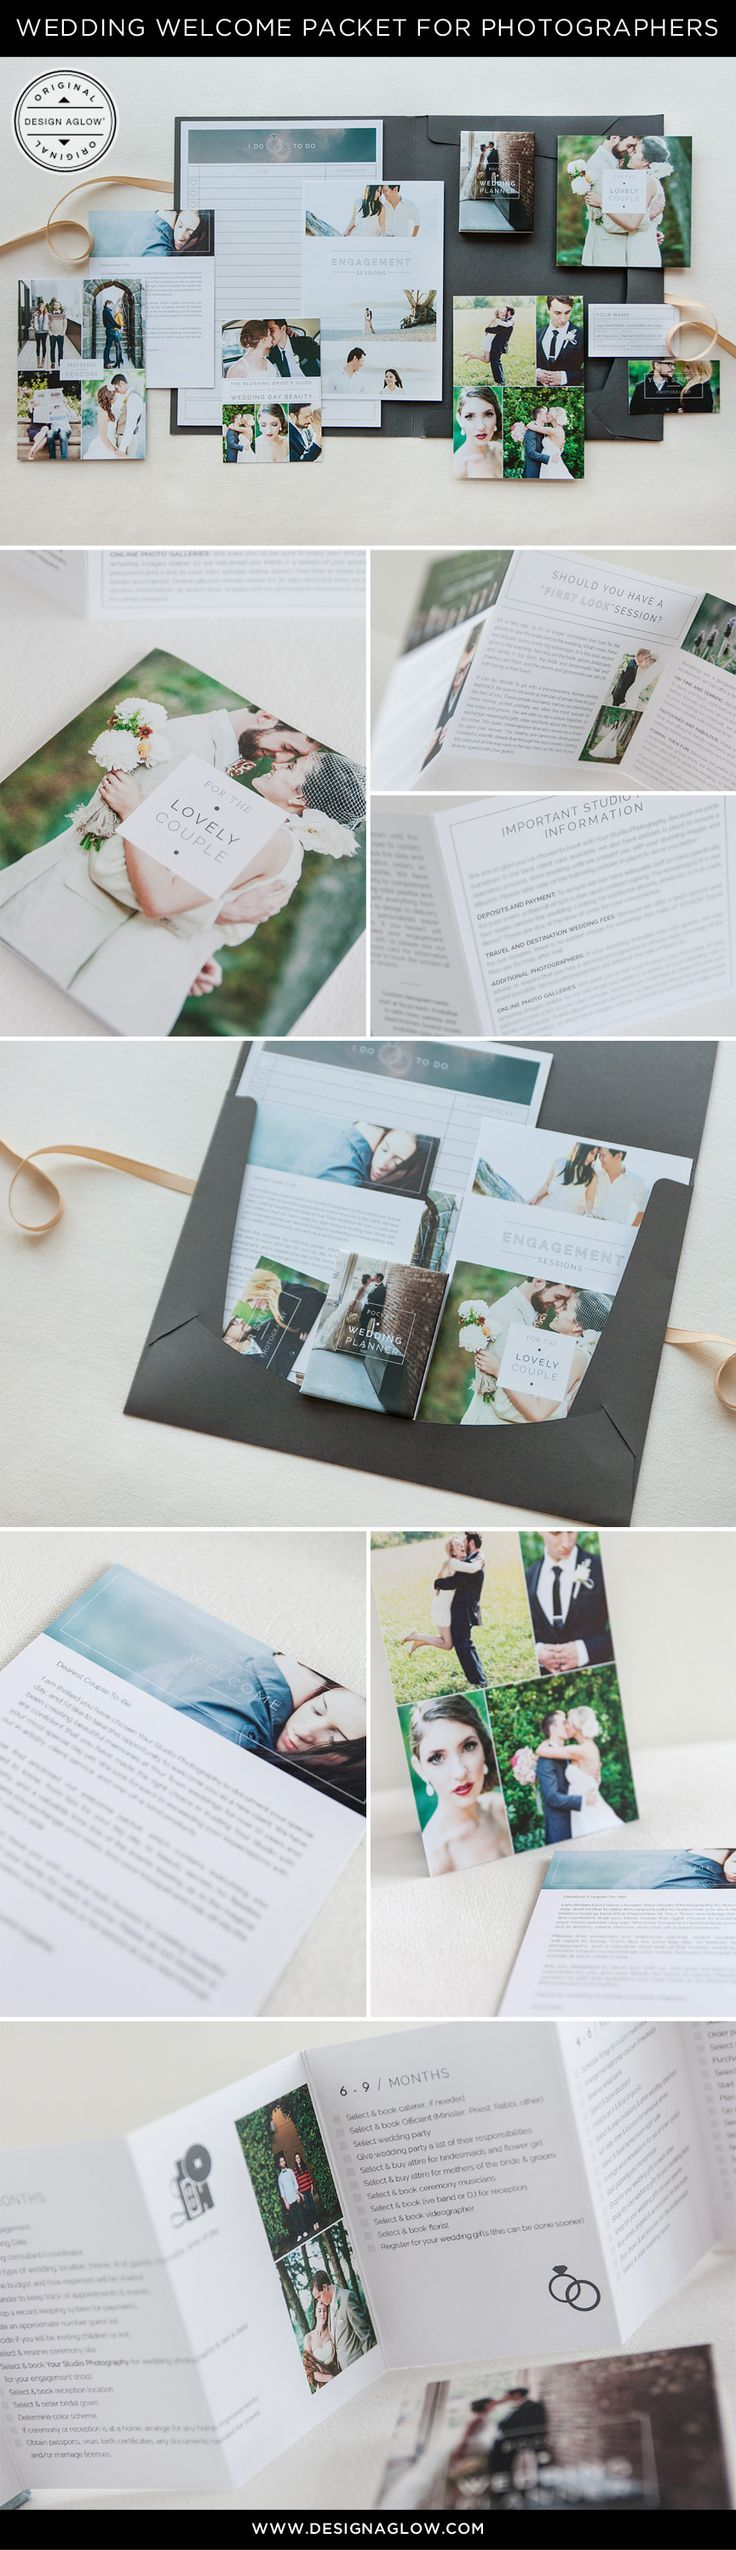 We've put together everything you need to help your modern wedding brand with original marketing content and templates that guide clients through every step of the process. A must have for wedding photographers. #designaglowhttp://www.designaglow.com/products/wedding-welcome-packet-minimalist-edition